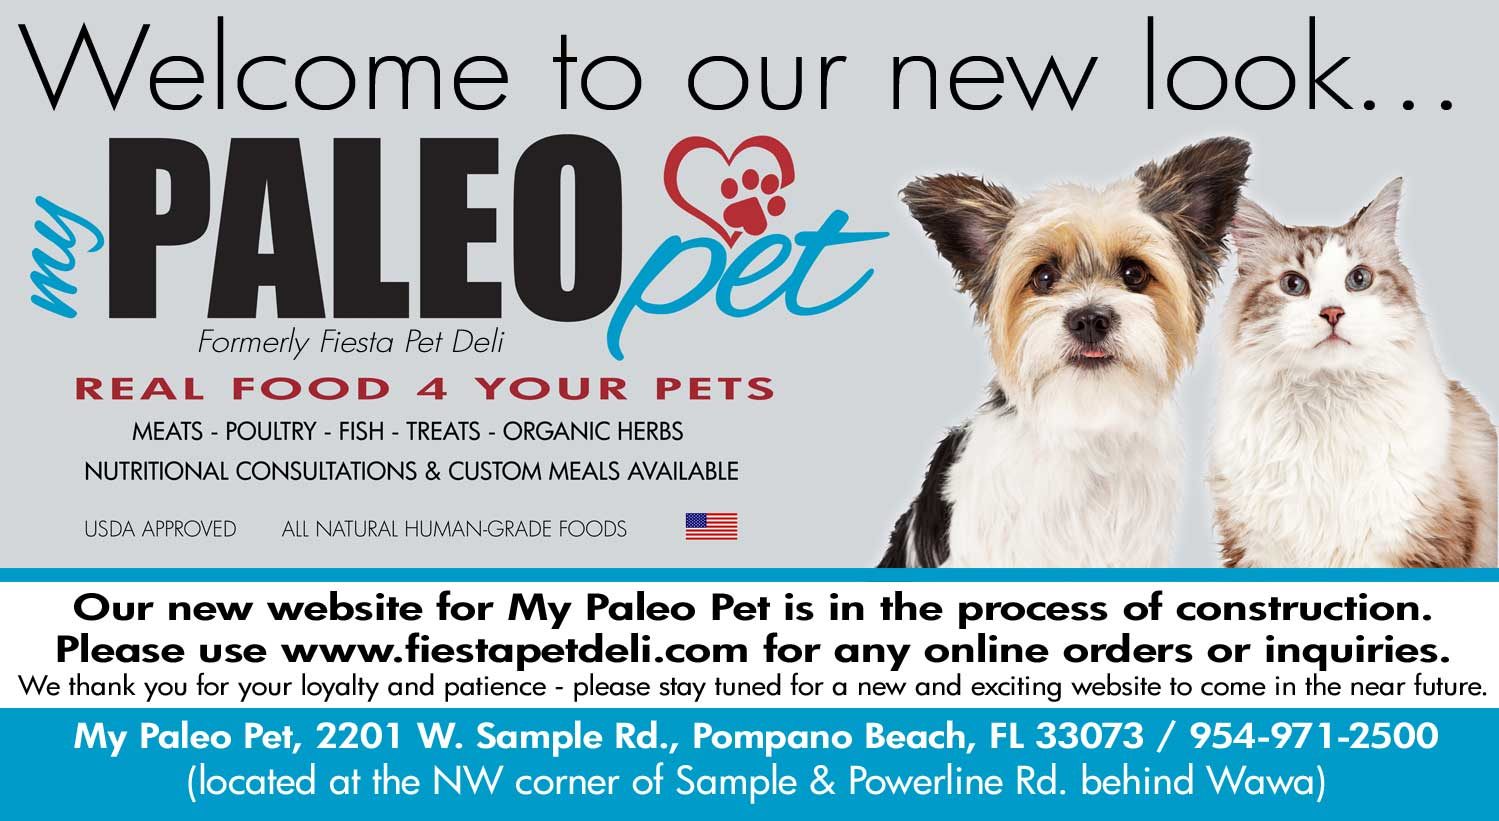 NEW LOCATION: 2201 W. Sample Rd., Bldg. 8, Suite 5A, Pompano Beach, FL  /  954-971-2500